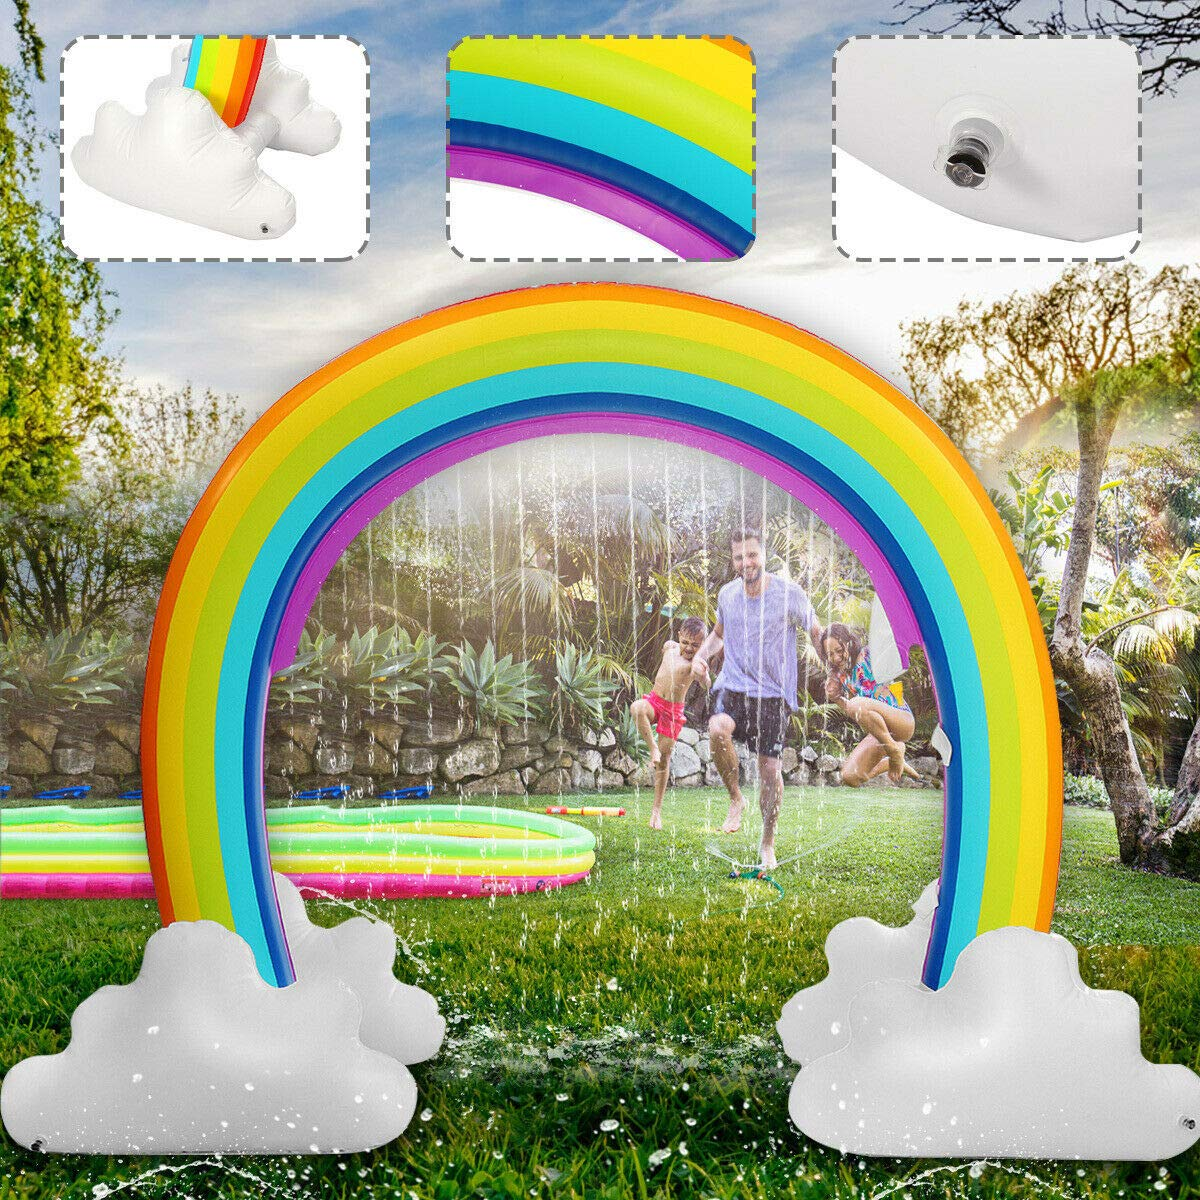 MerryXD Rainbow Sprinkler,Giant Water Inflatable Arch Sprinkler Outdoor Summer Toys for Kids by MerryXD